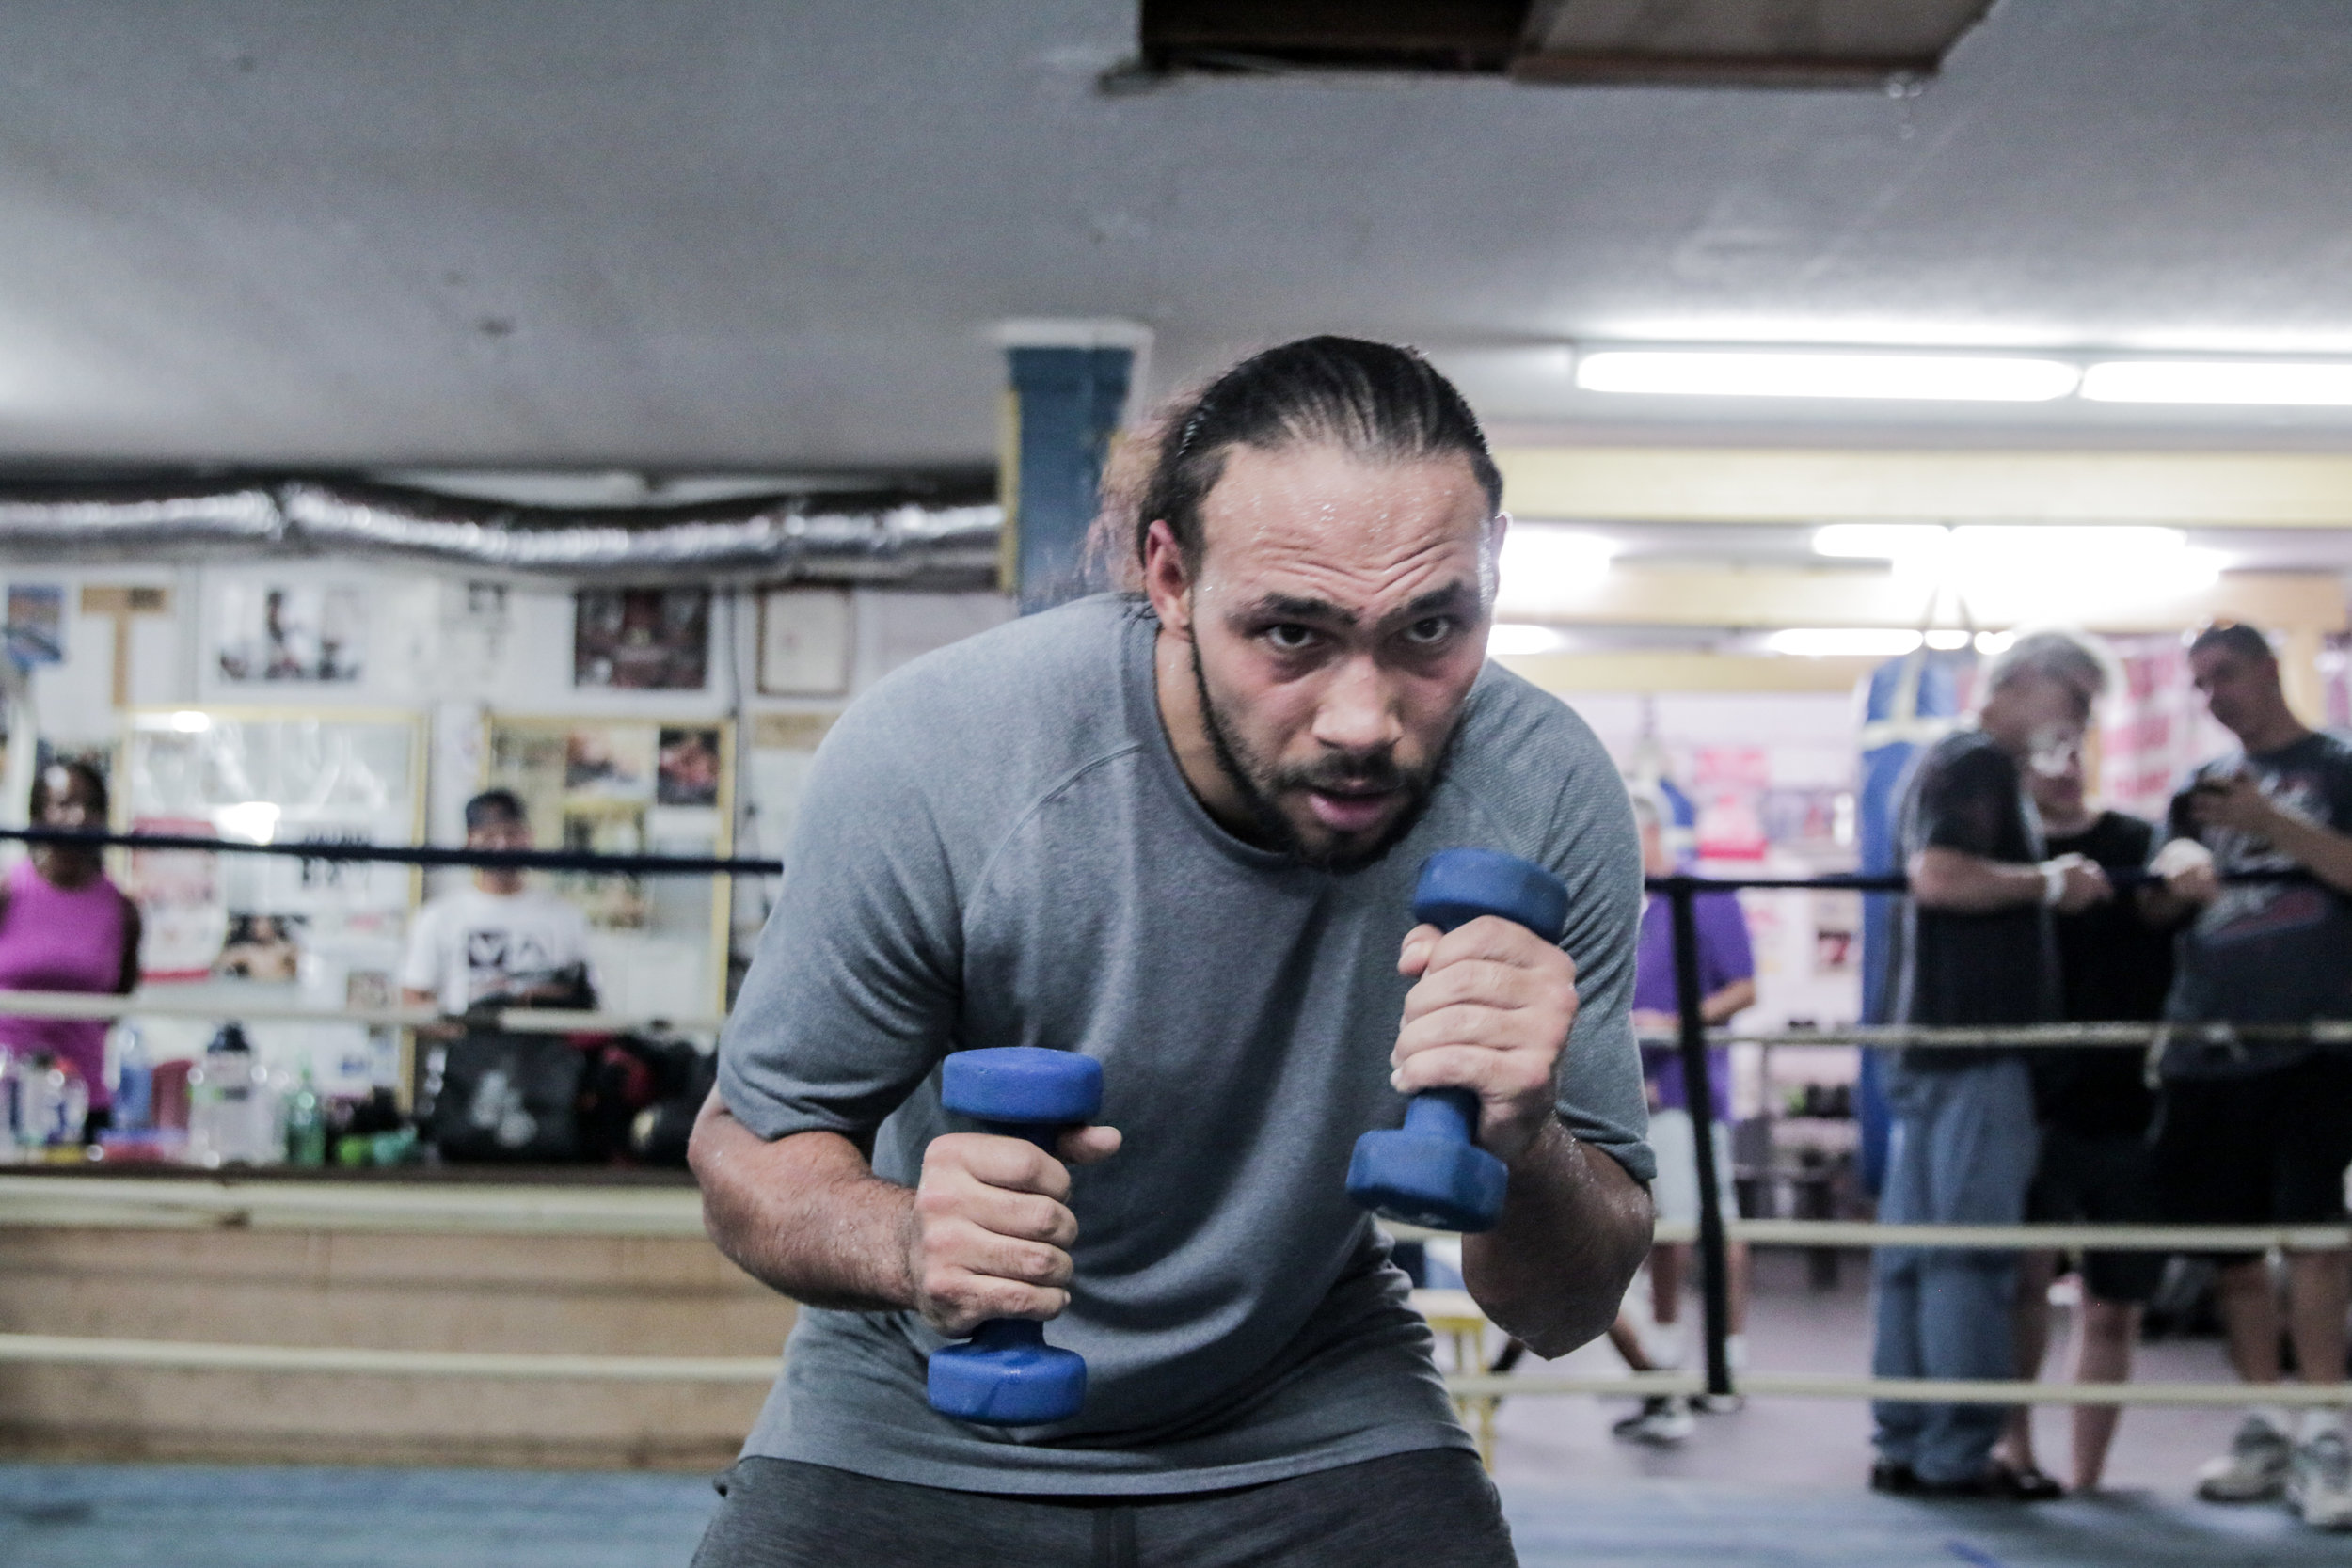 Keith Thurman in training camp. Photo: Andy Samuelson/Premier Boxing Champions